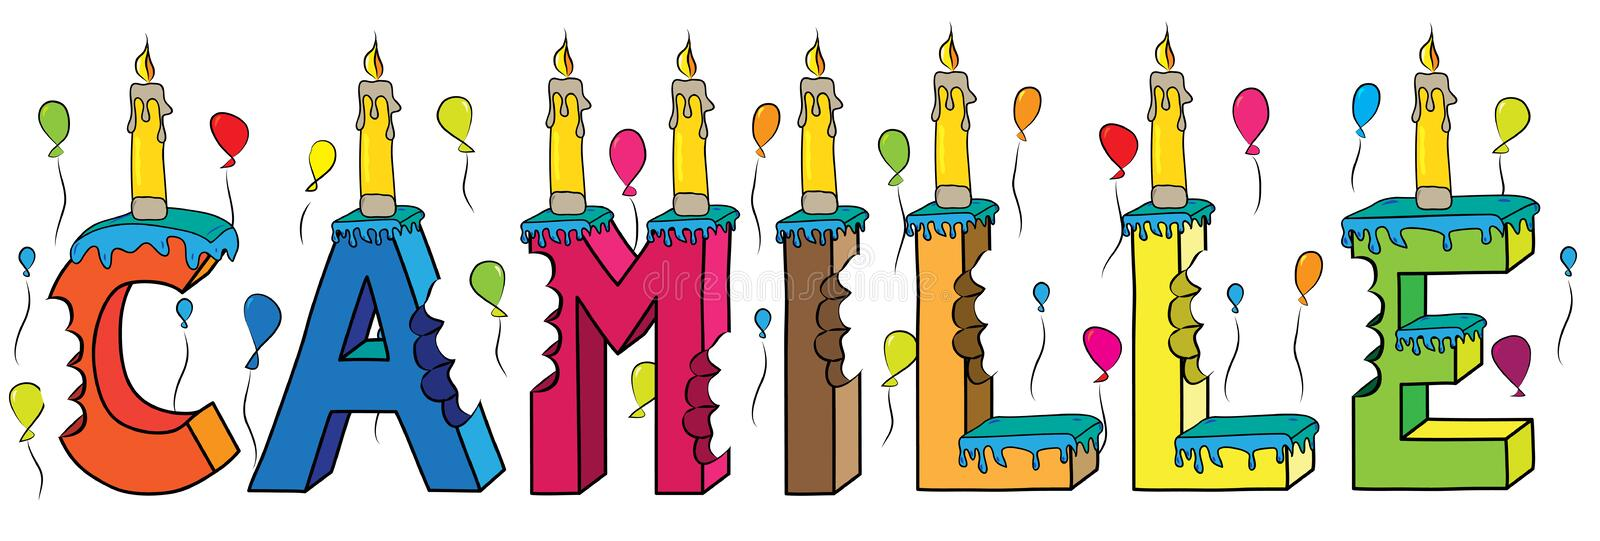 Camille female first name bitten colorful 3d lettering birthday cake with candles and balloons royalty free illustration